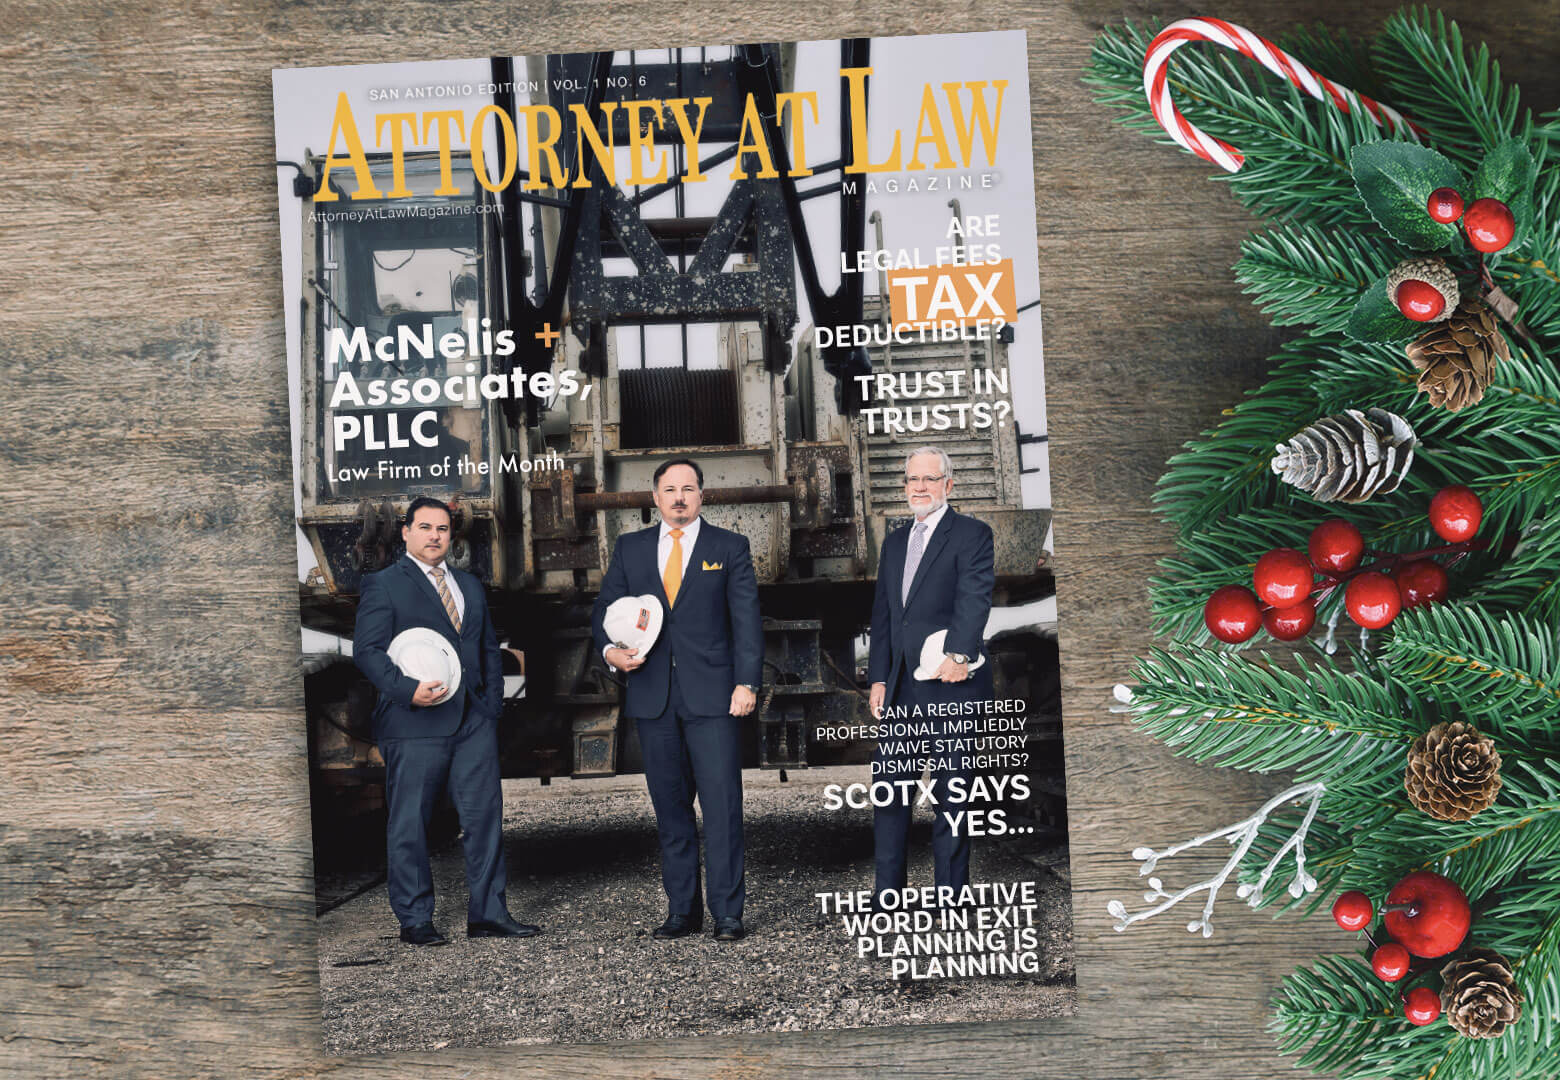 Attorney at Law Magazine Phoenix Vol. 11 No. 2